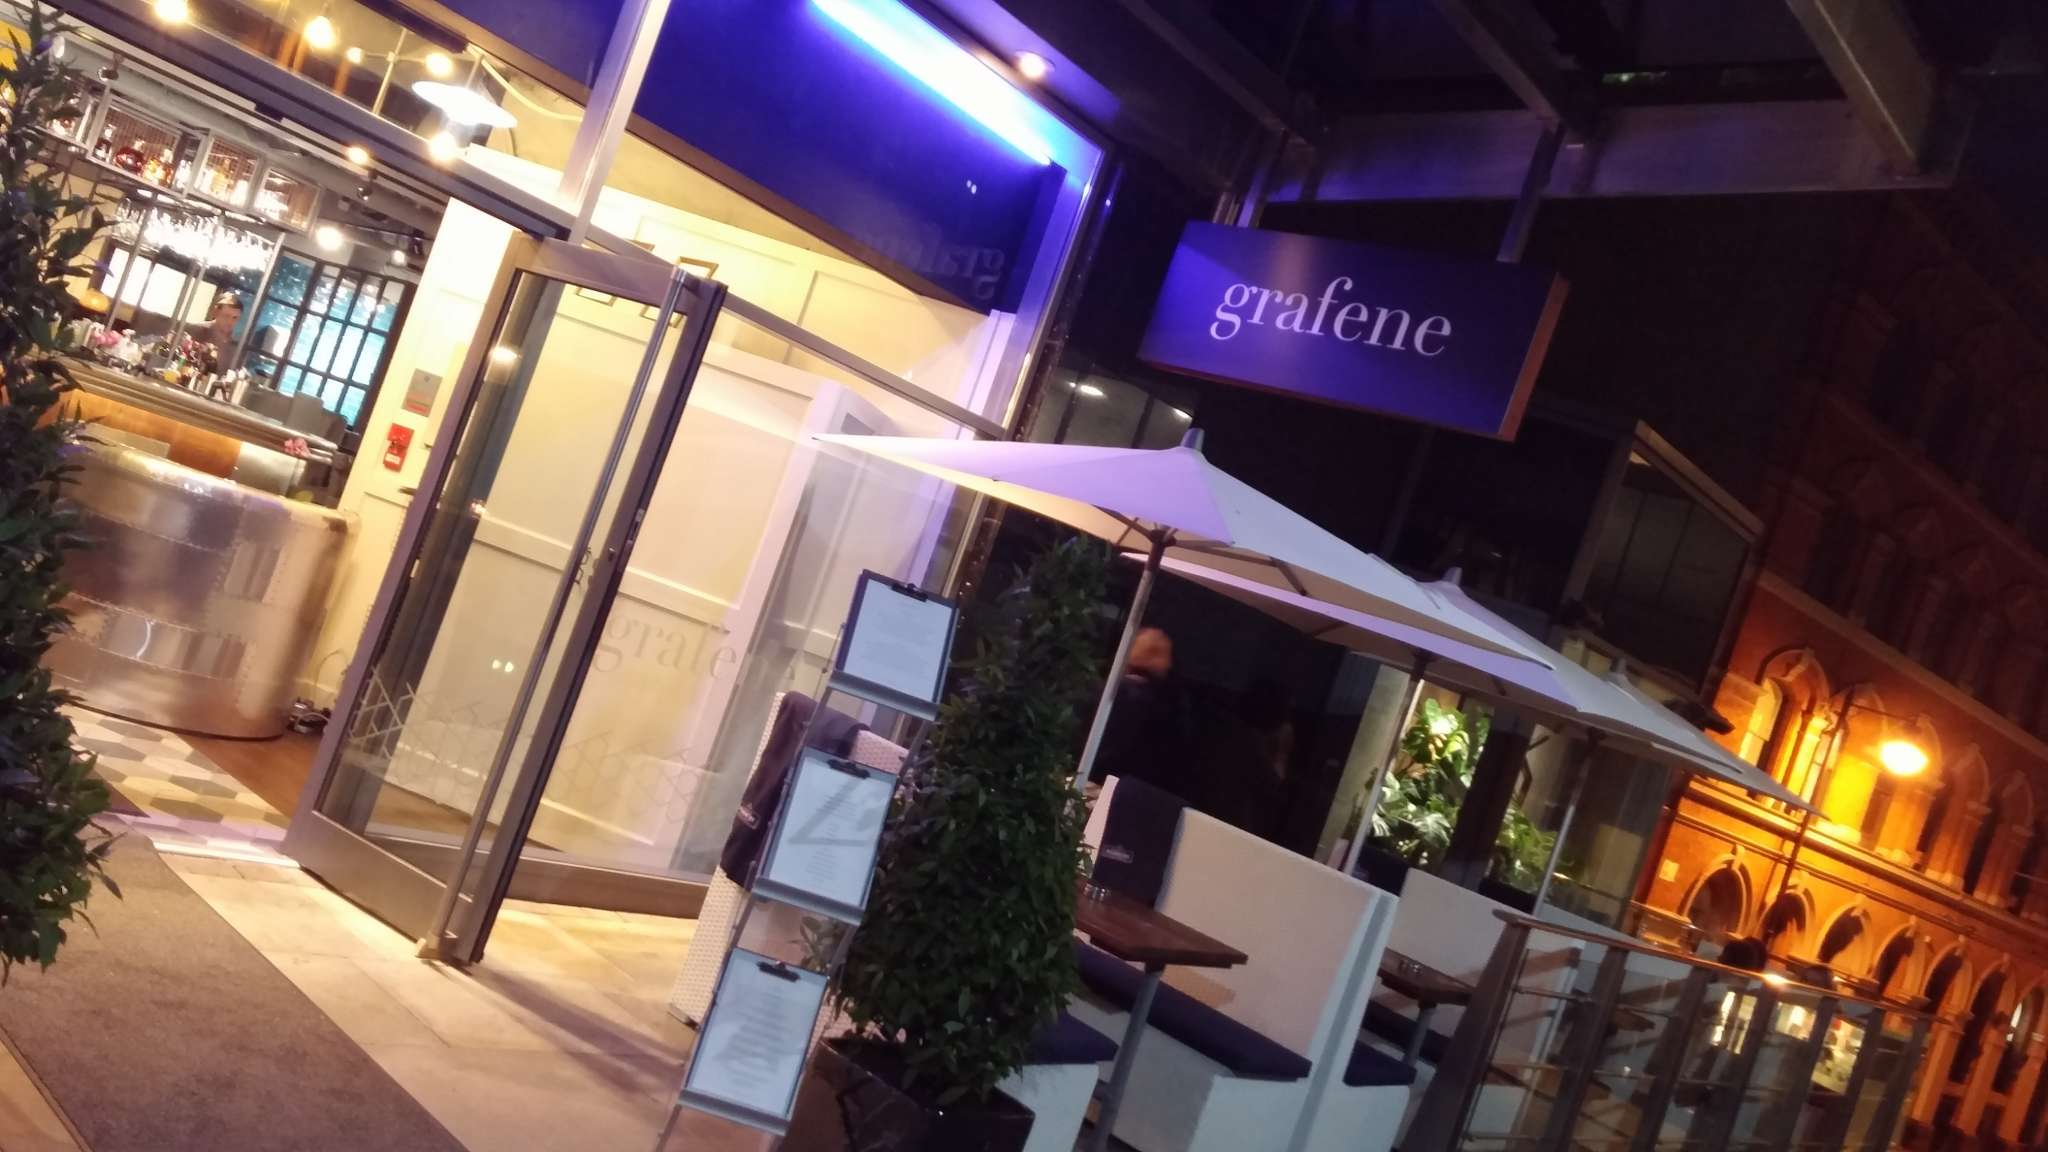 Restaurant review: Grafene, Manchester